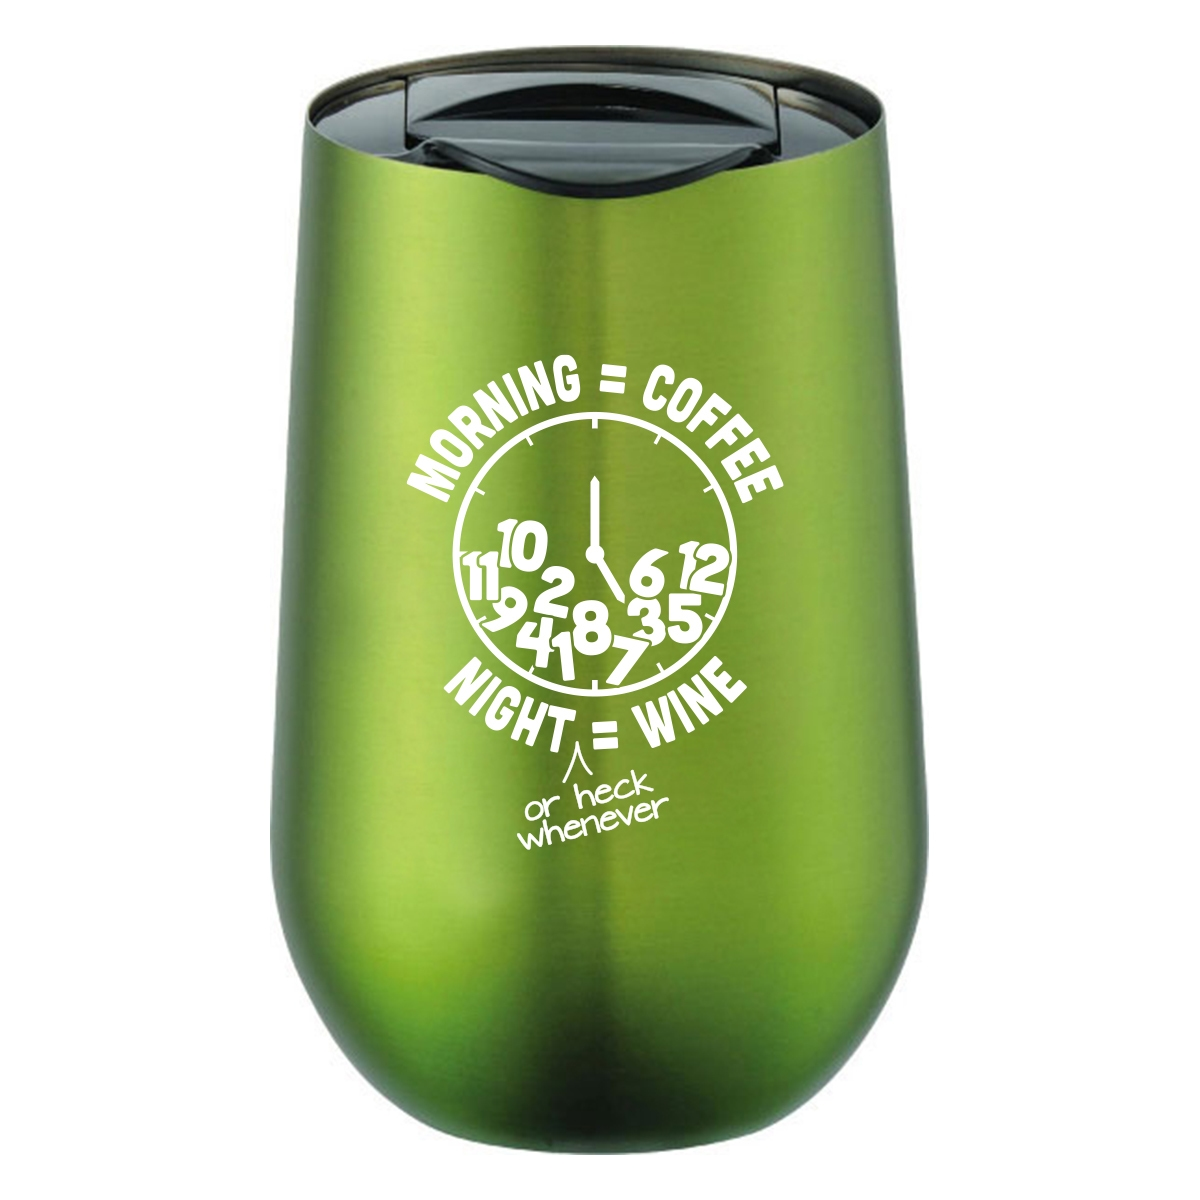 Stainless steel wine tumbler with coffee and wine quote